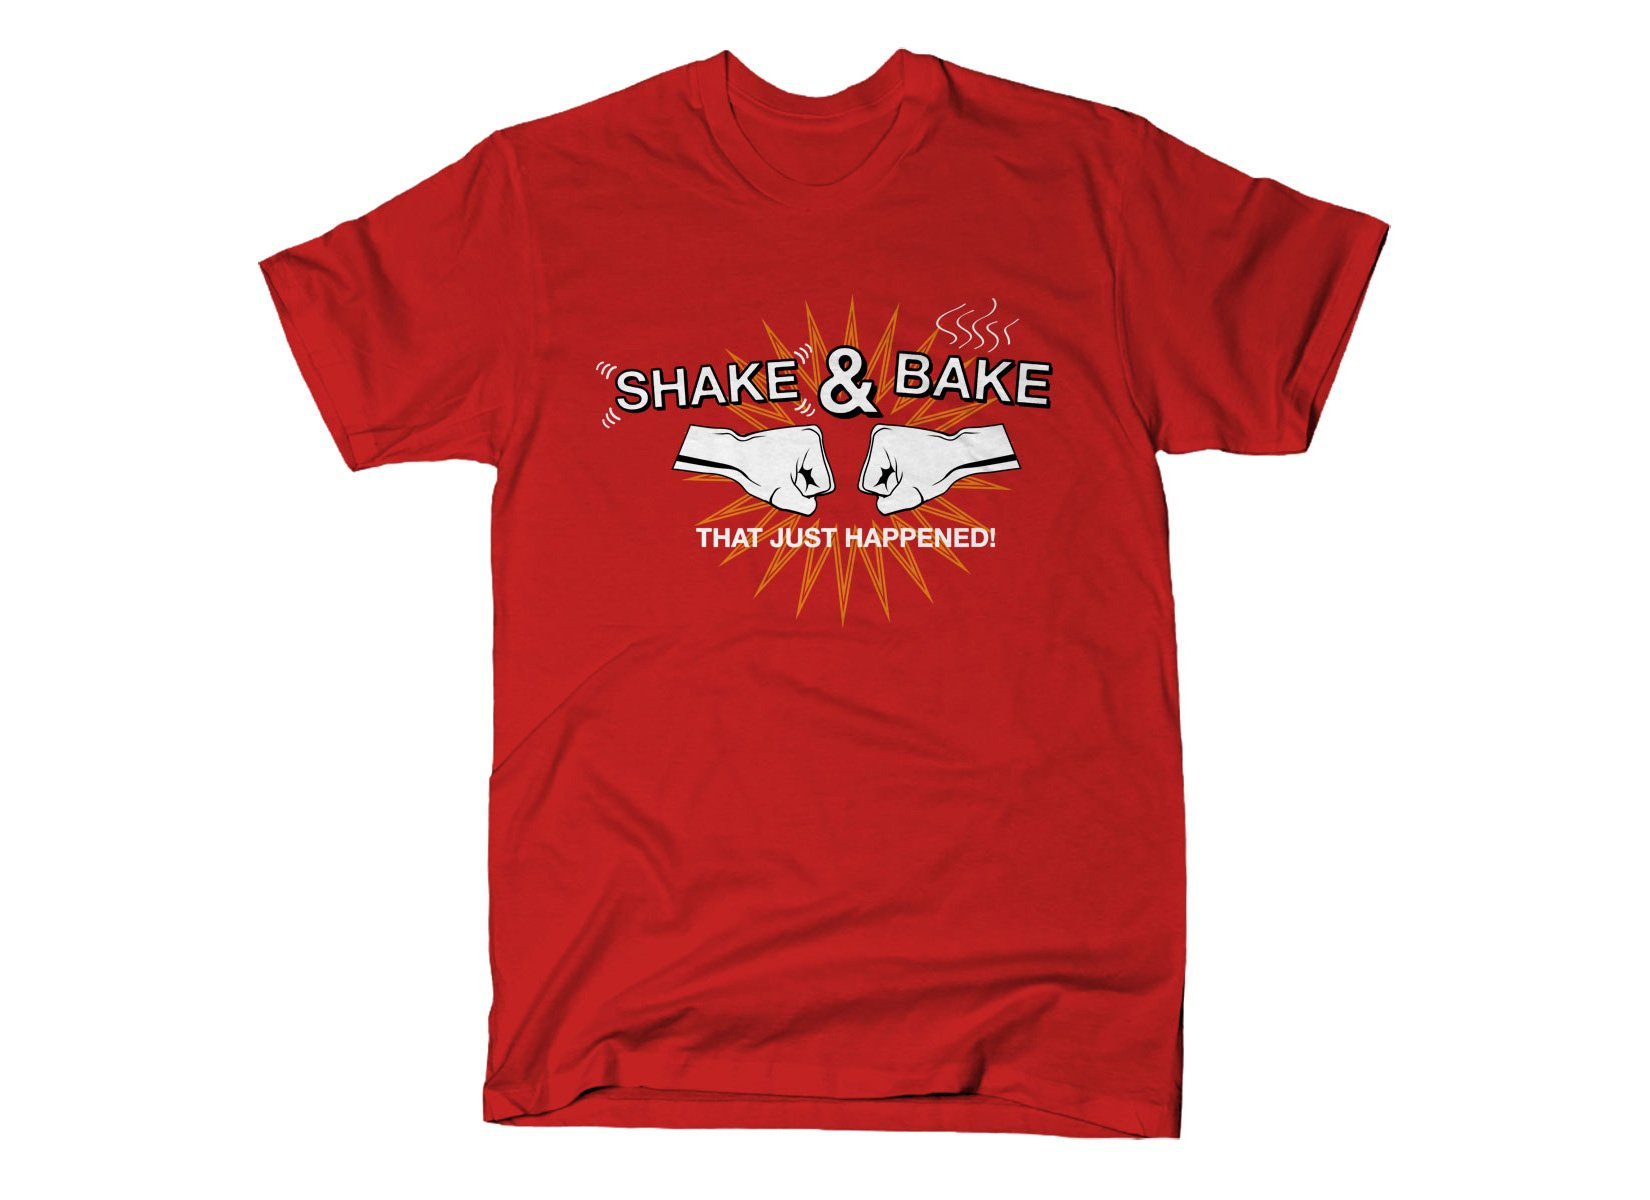 Shake & Bake on Mens T-Shirt